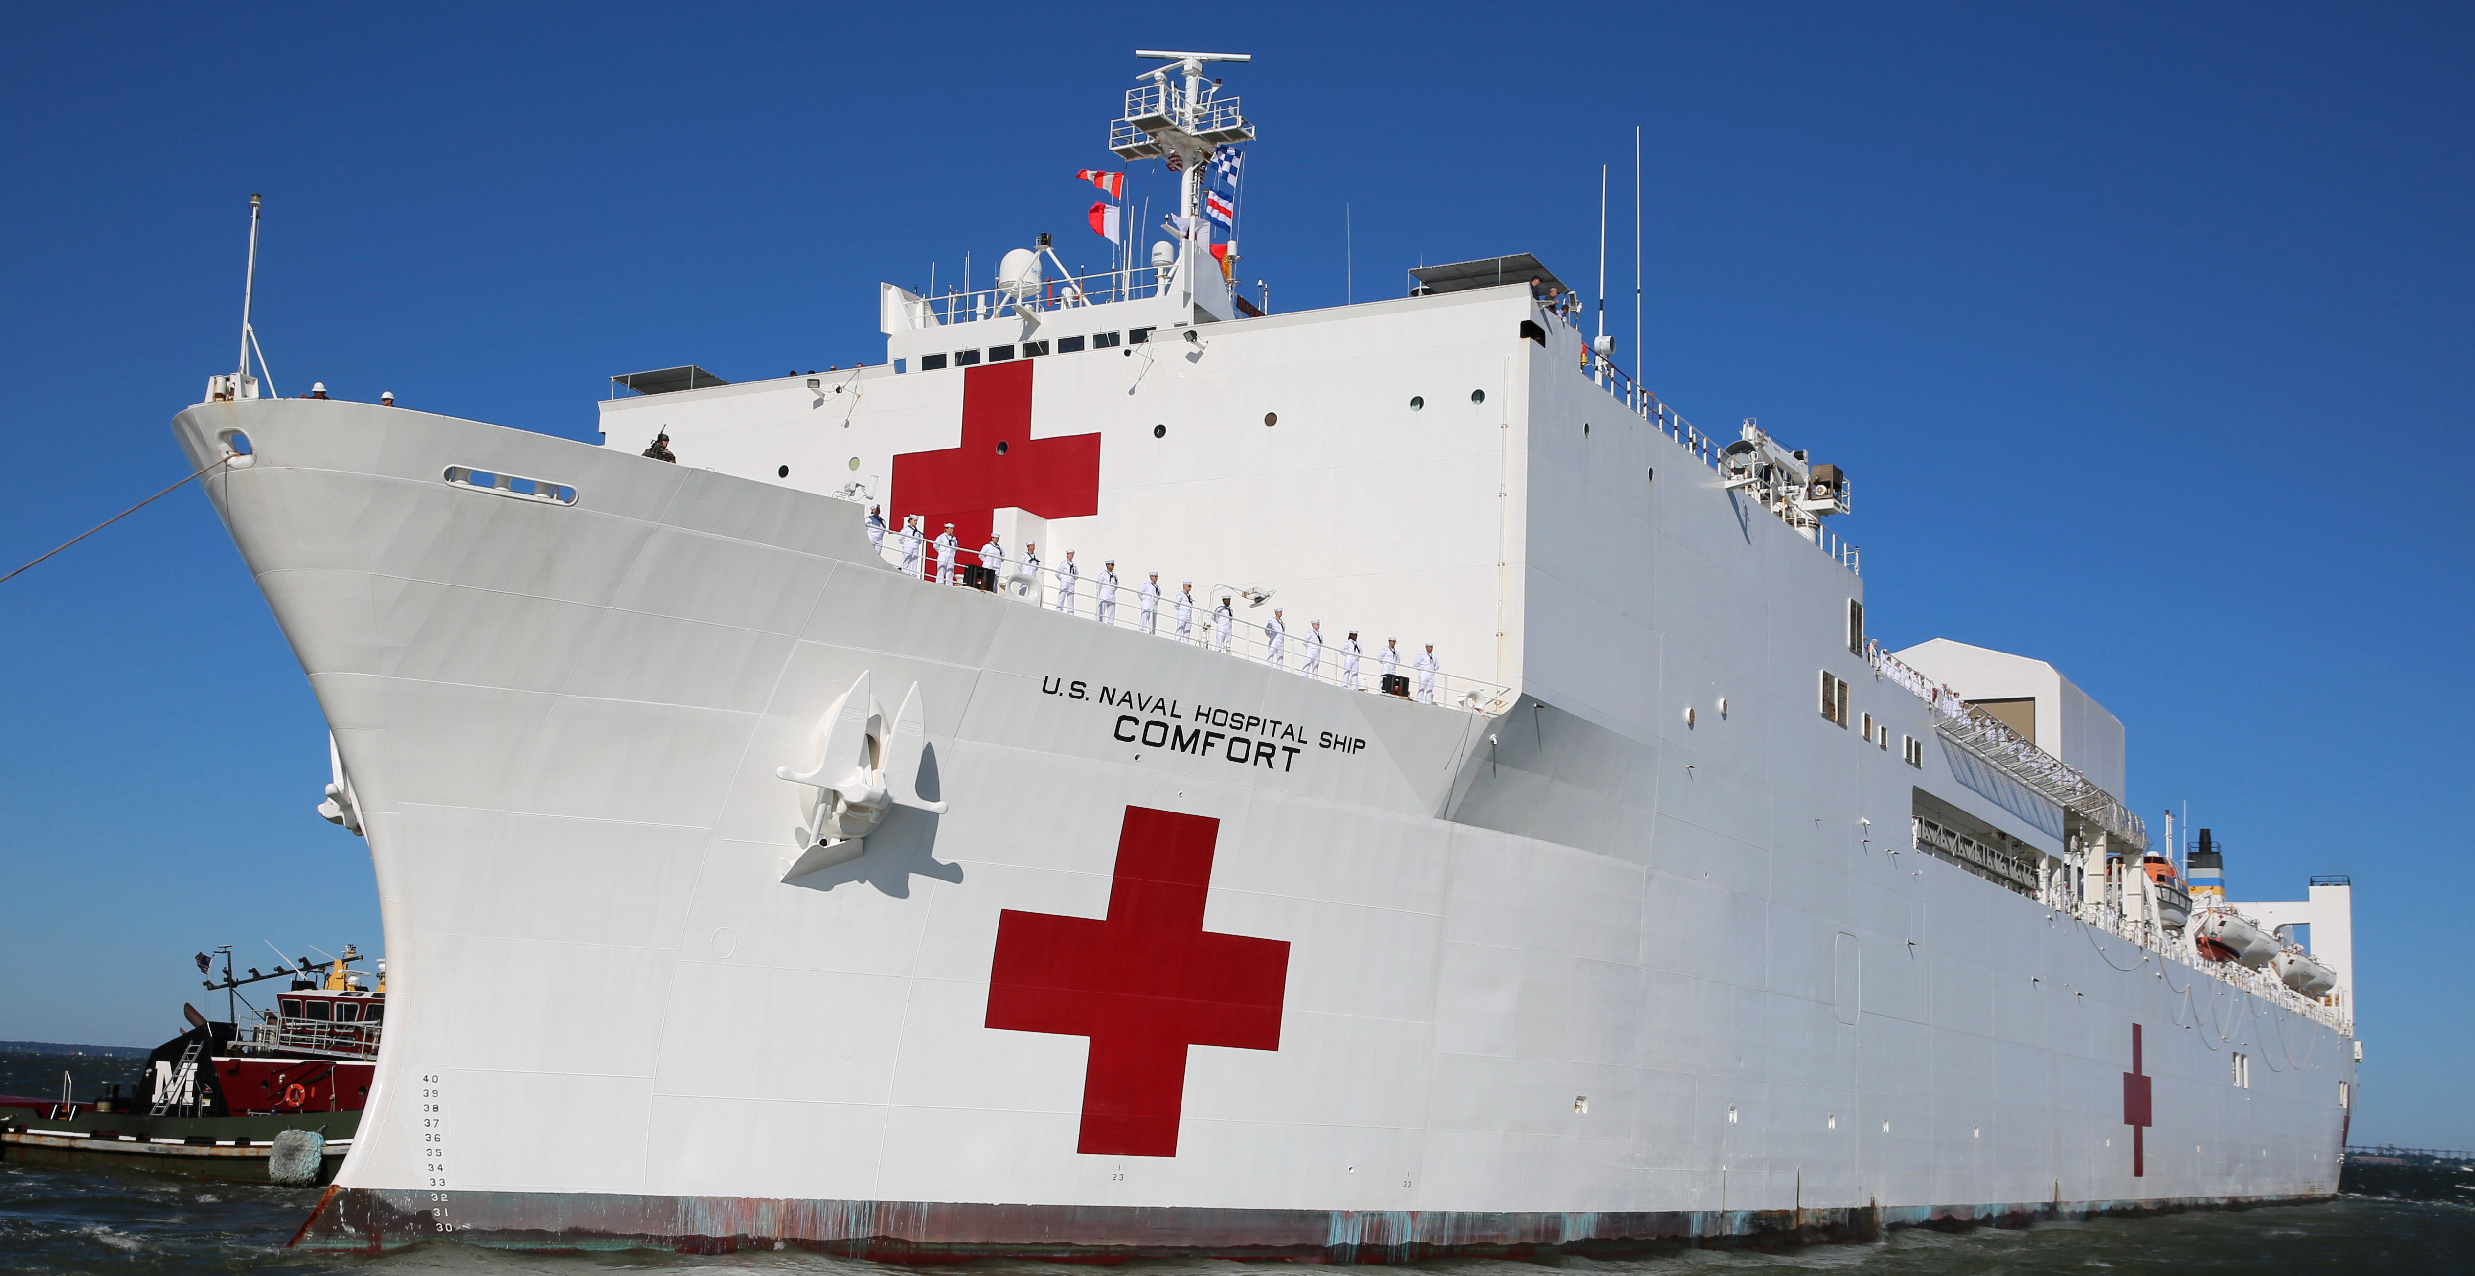 USNS Comfort Deploys to Provide Medical Assistance, Including to Venezuelans in Need